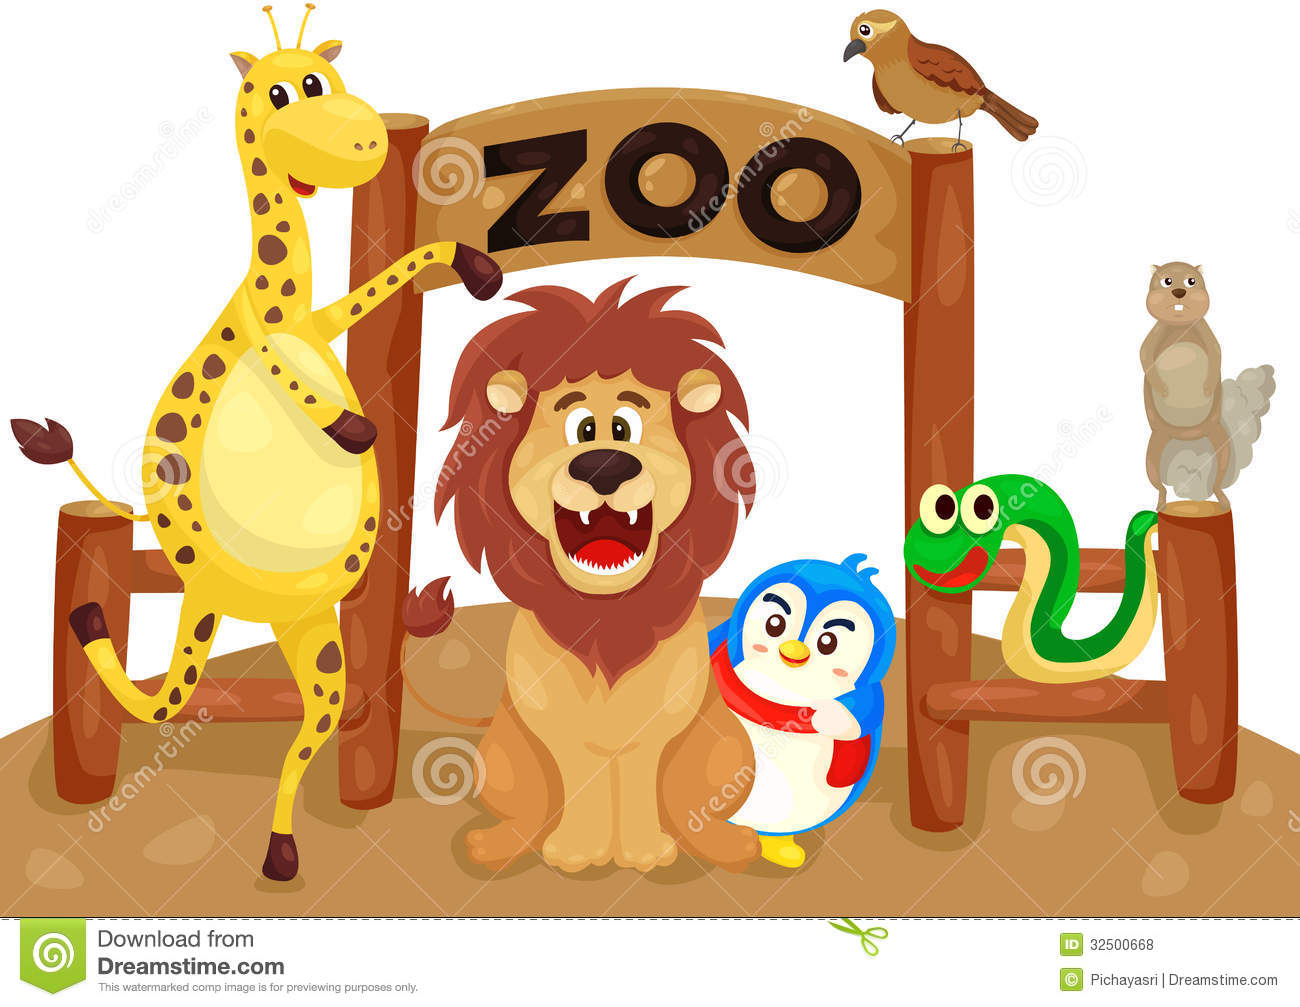 Zoo Sign Clipart Photos Good Pix Gallery-Zoo Sign Clipart Photos Good Pix Gallery-17